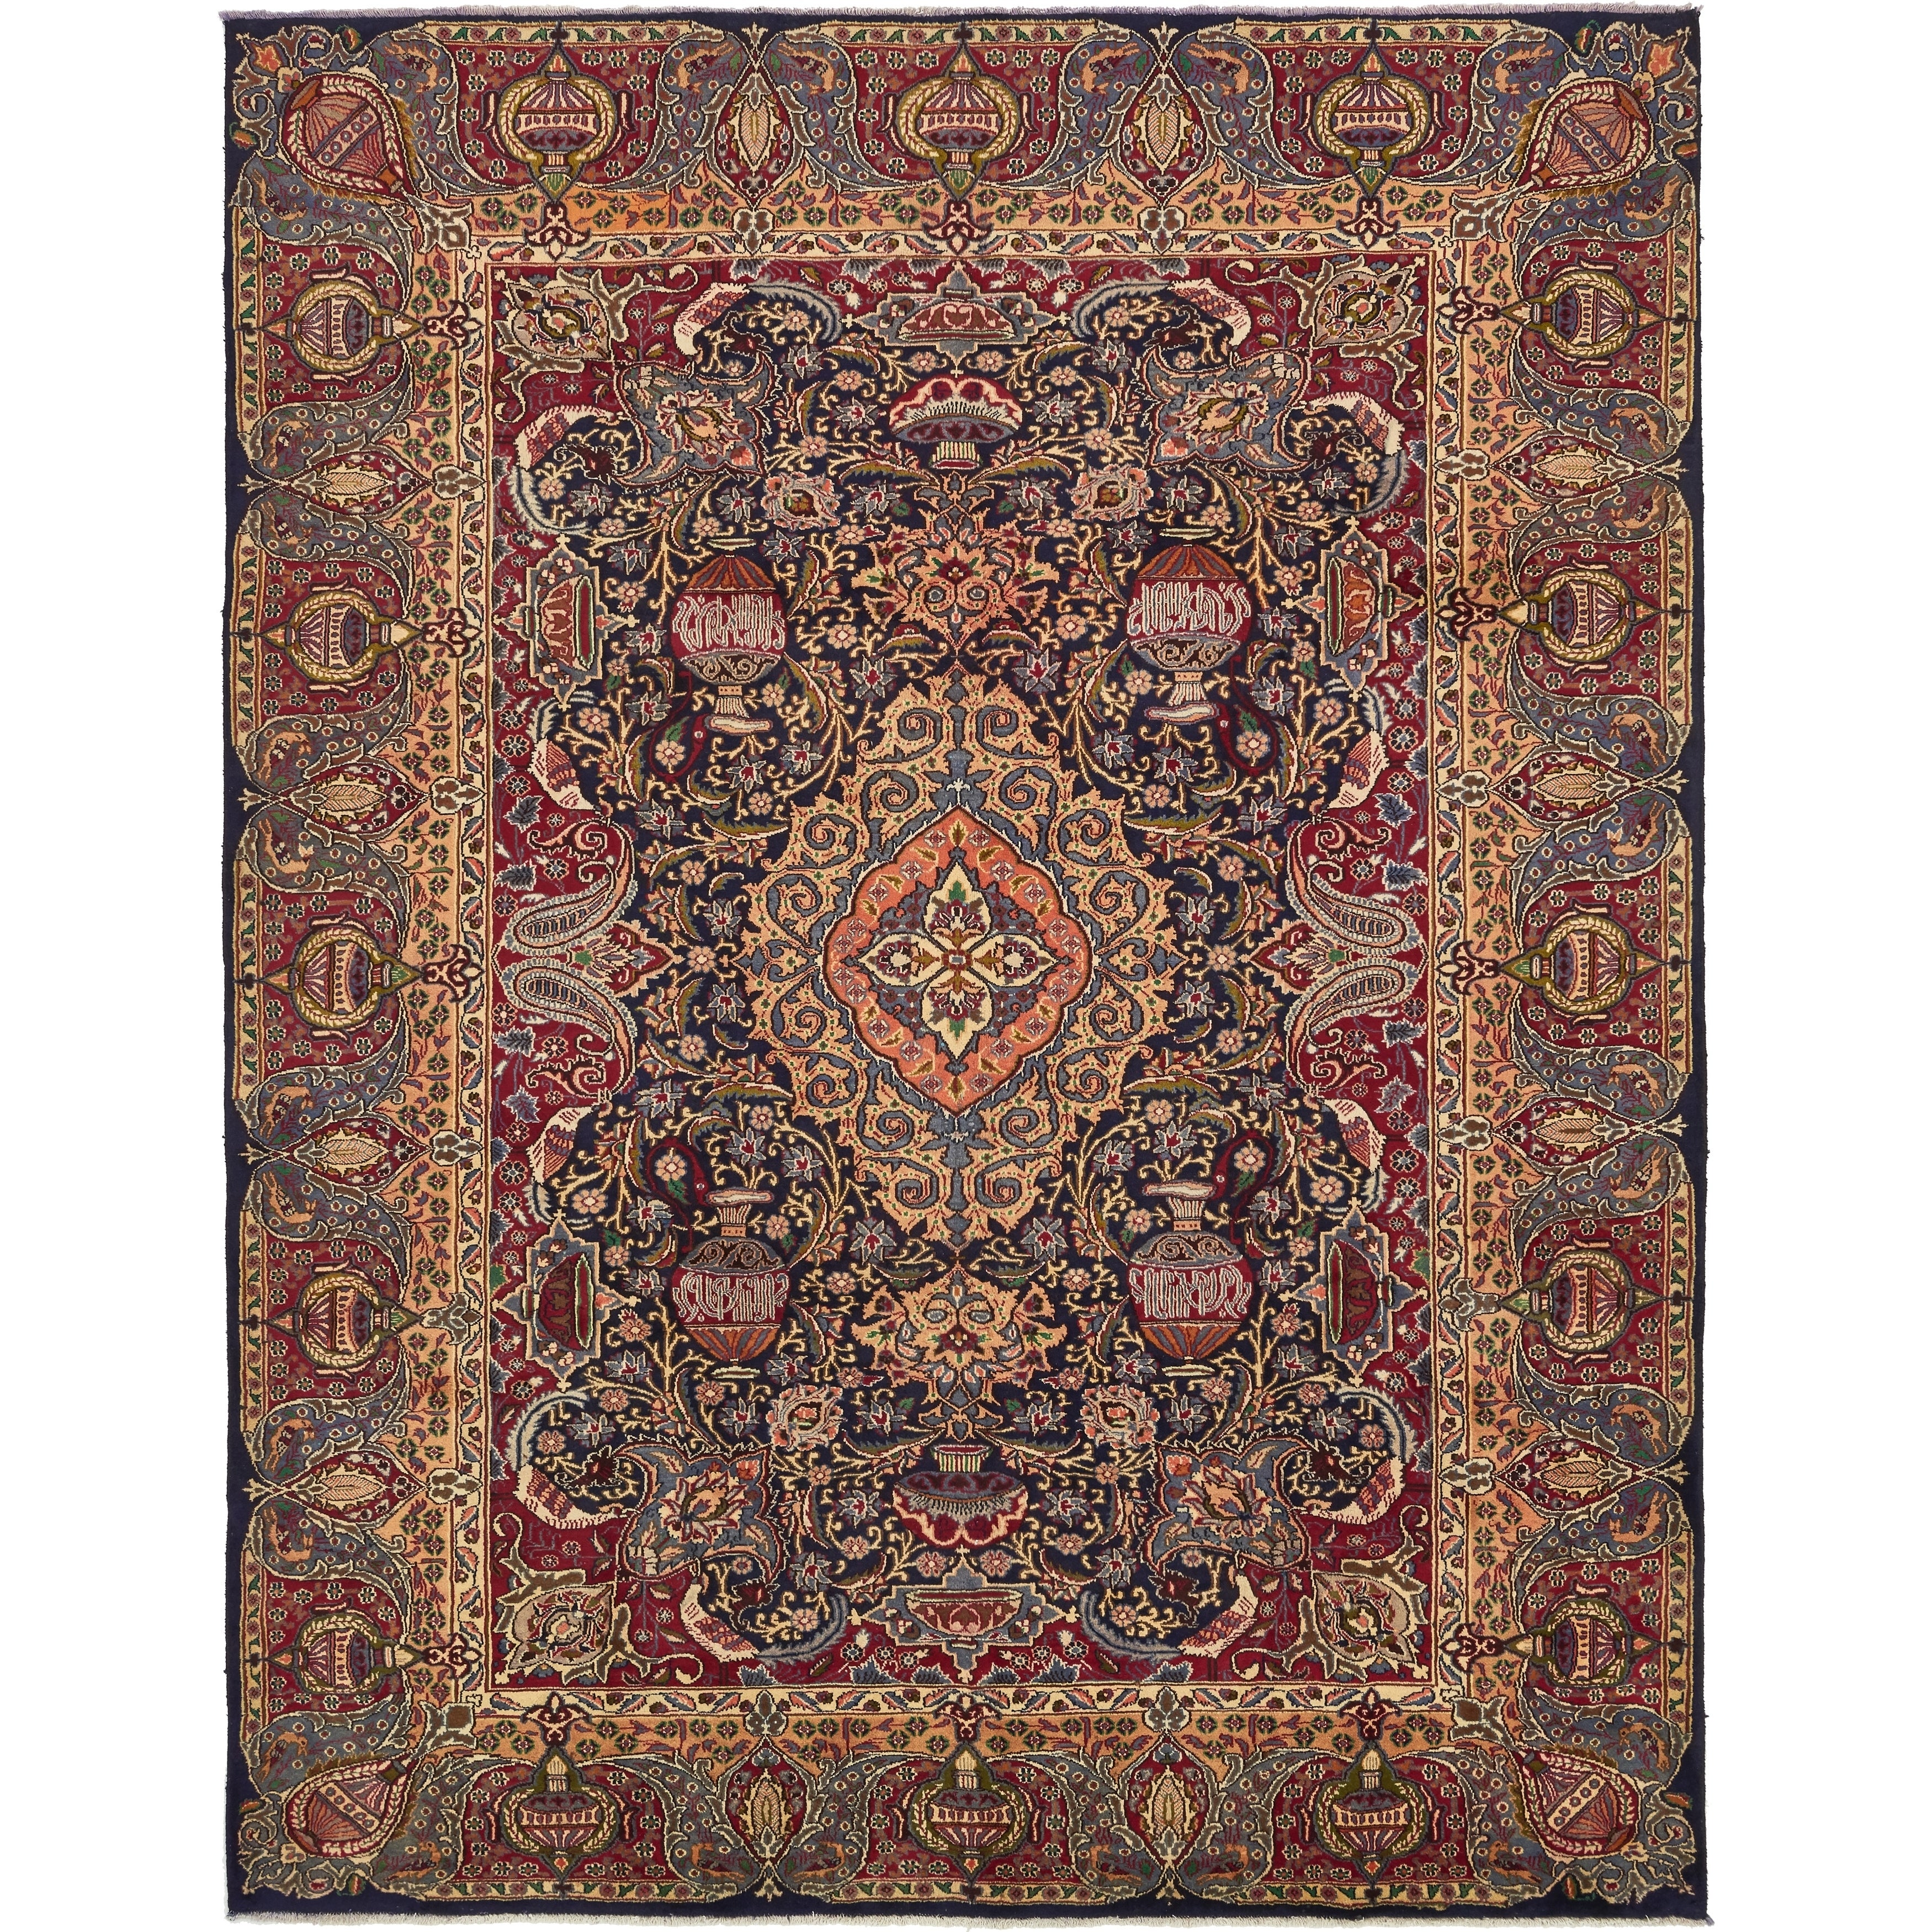 Hand Knotted Kashmar Semi Antique Wool Area Rug - 9 7 x 12 4 (Navy blue - 9 7 x 12 4)